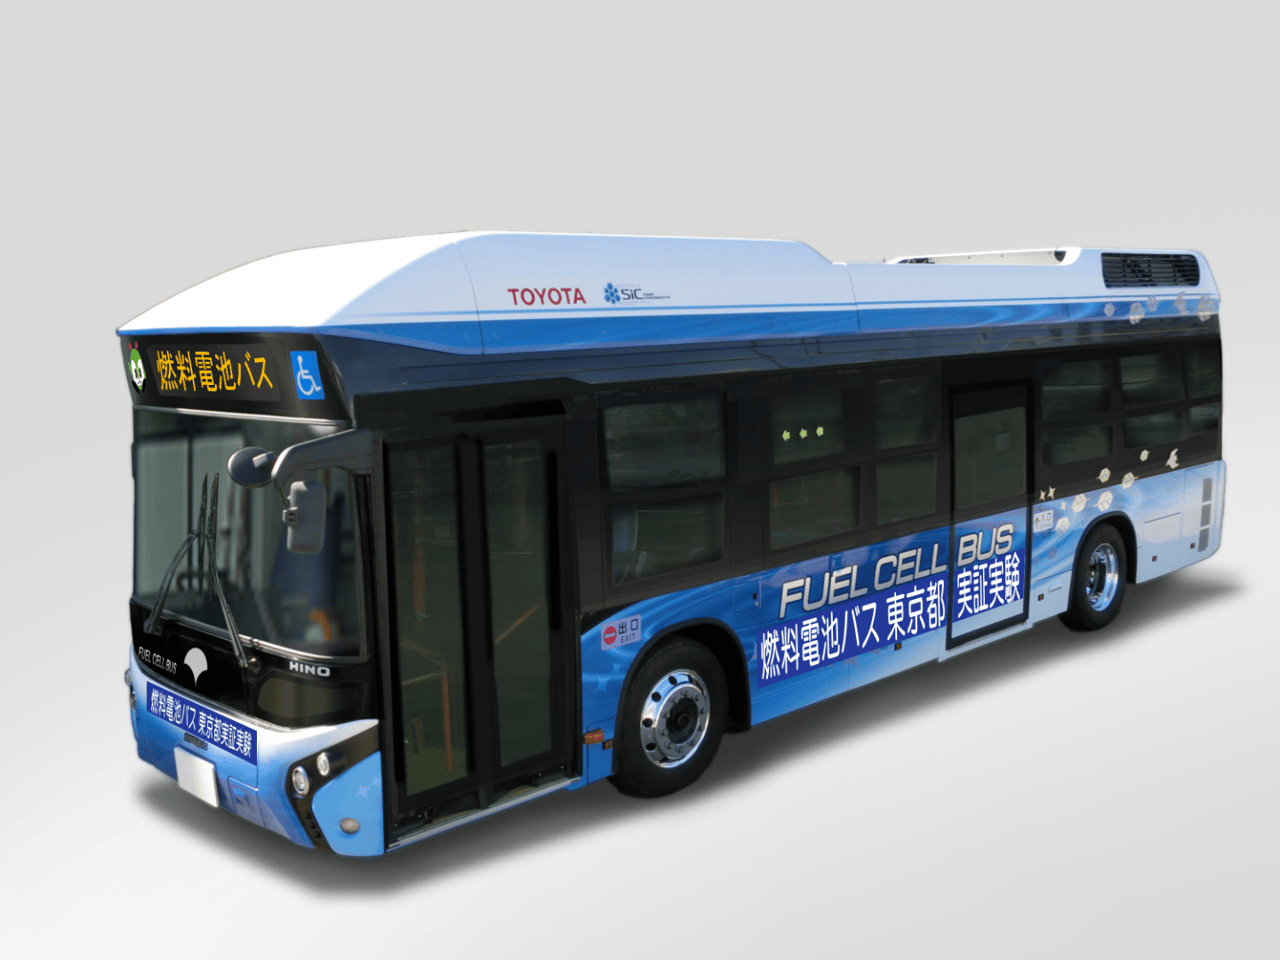 The Toyota-Hino fuel-cell bus is undergoing real-world tests in Tokyo